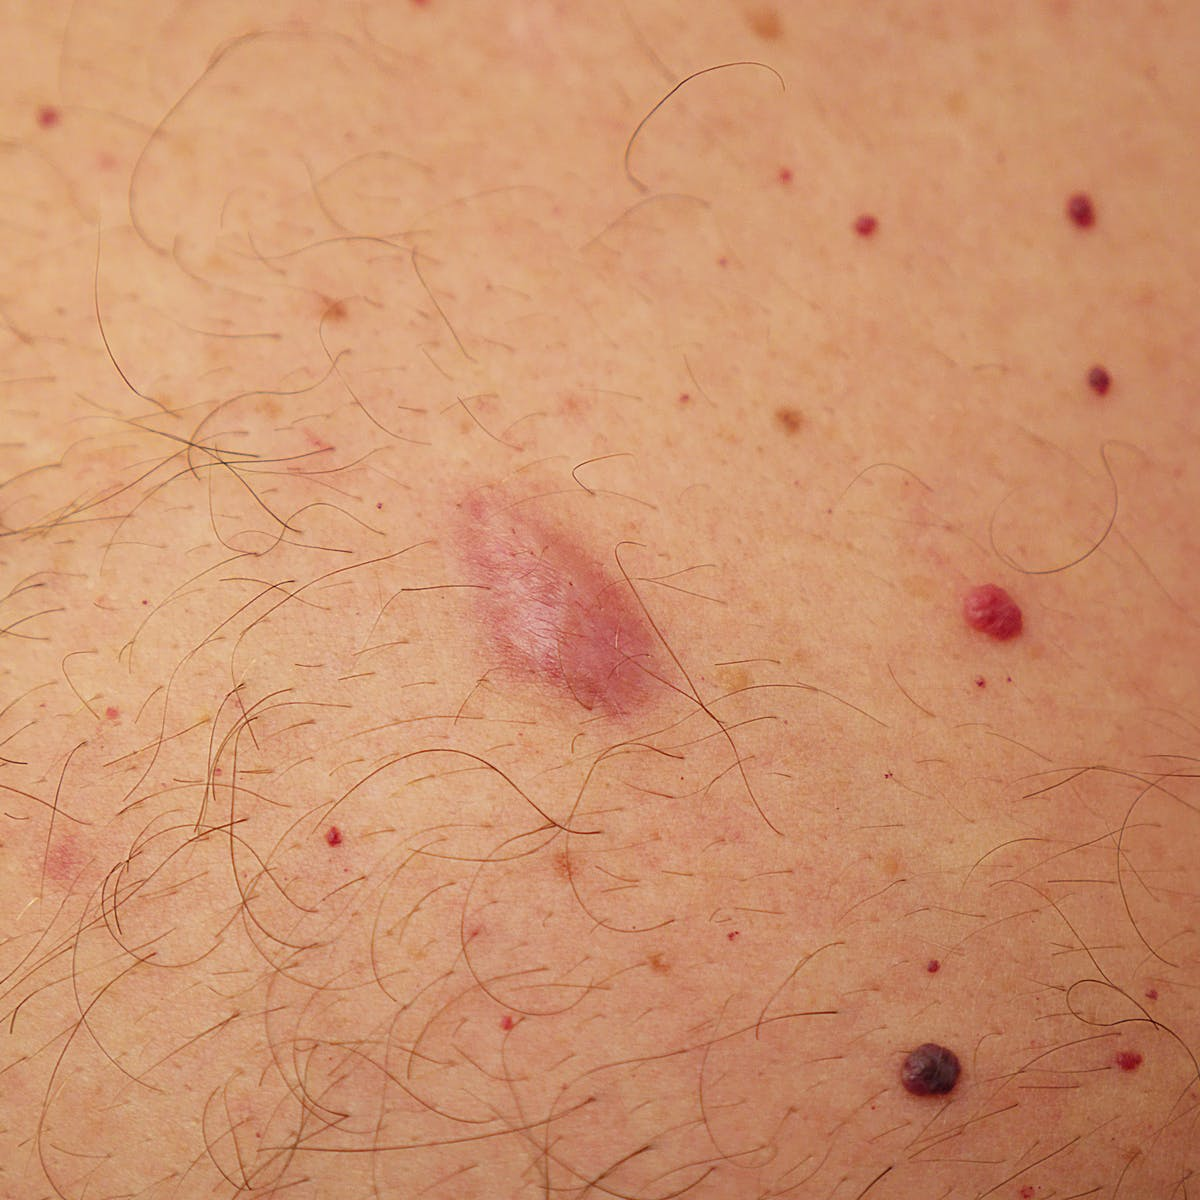 Common lumps and bumps on and under the skin: what are they?